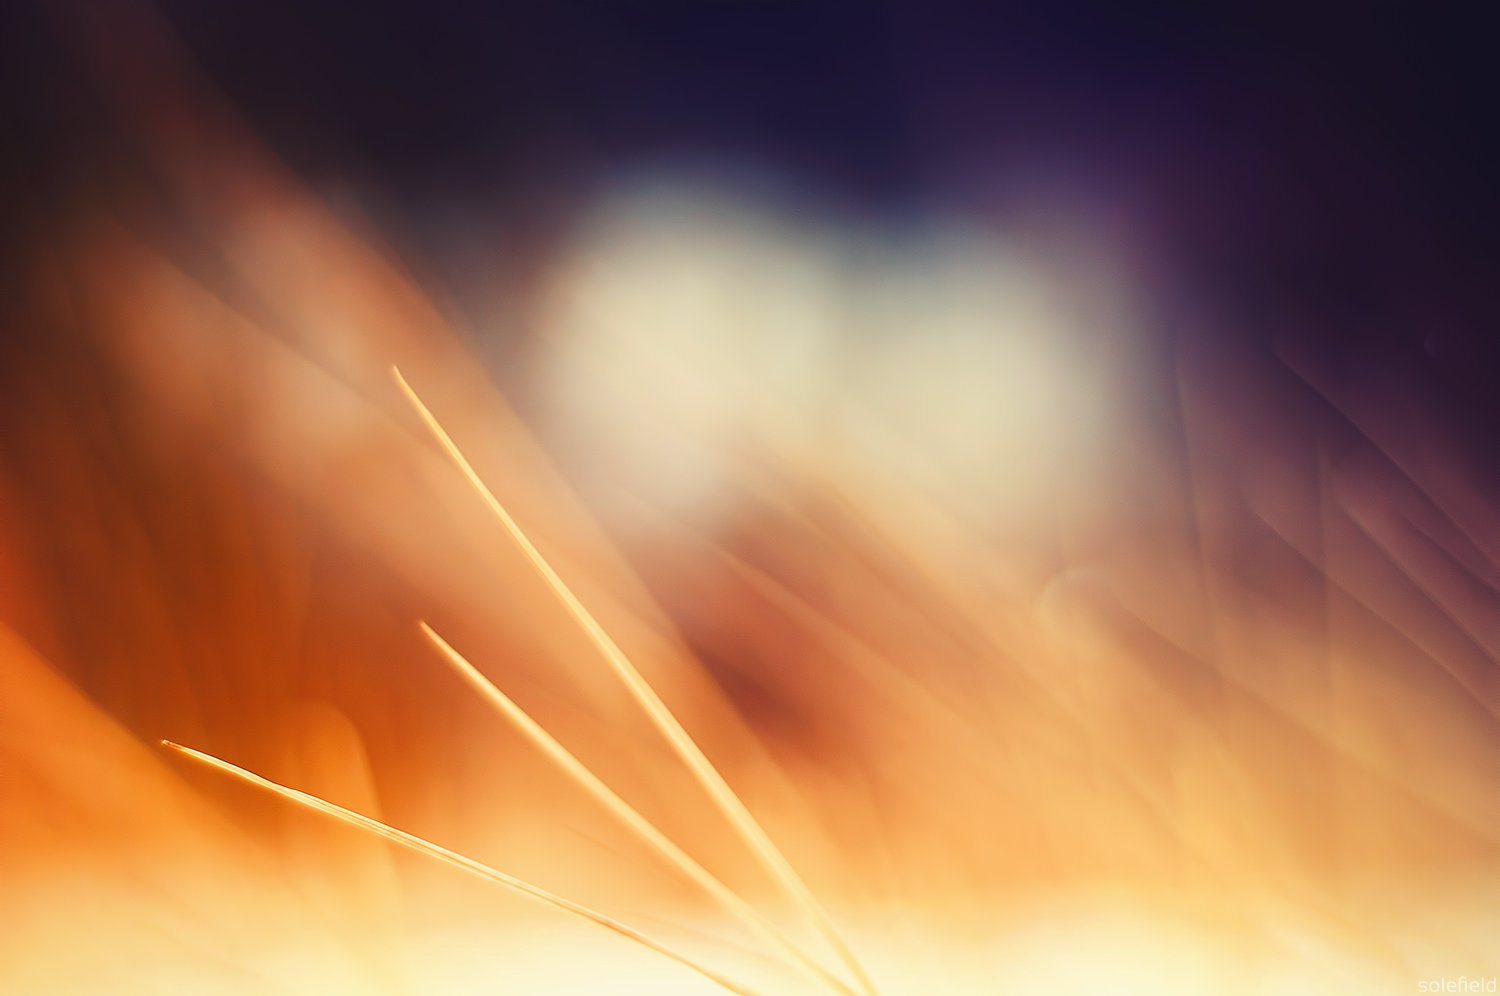 Abstract Brown Grass with Shallow Focus